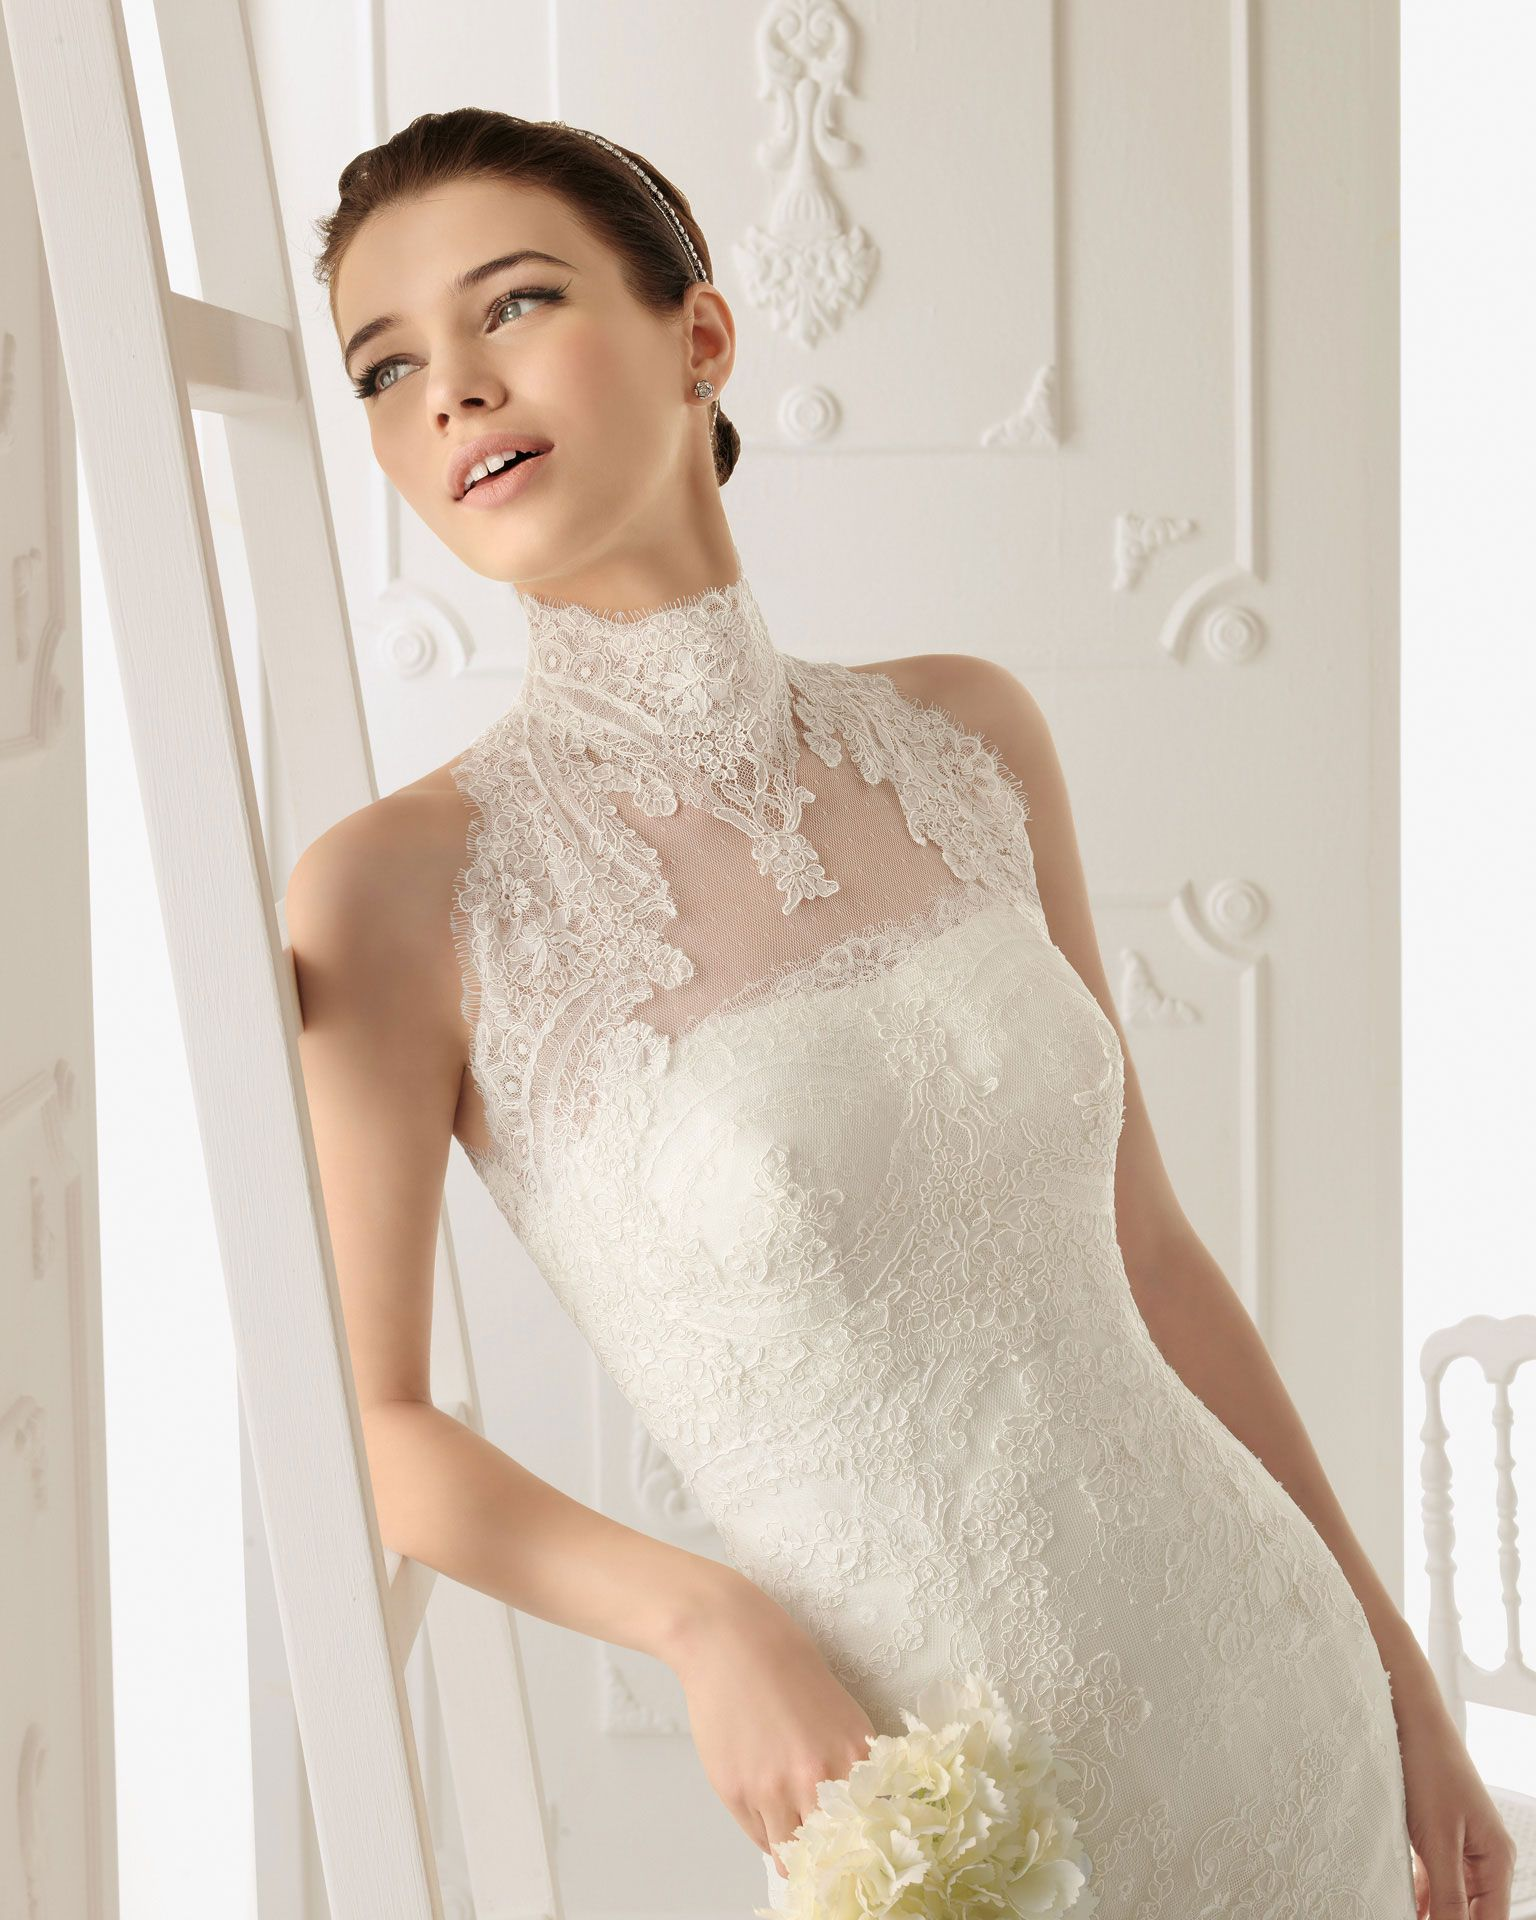 Rosa clara a lace top layered over your dress for the perfect